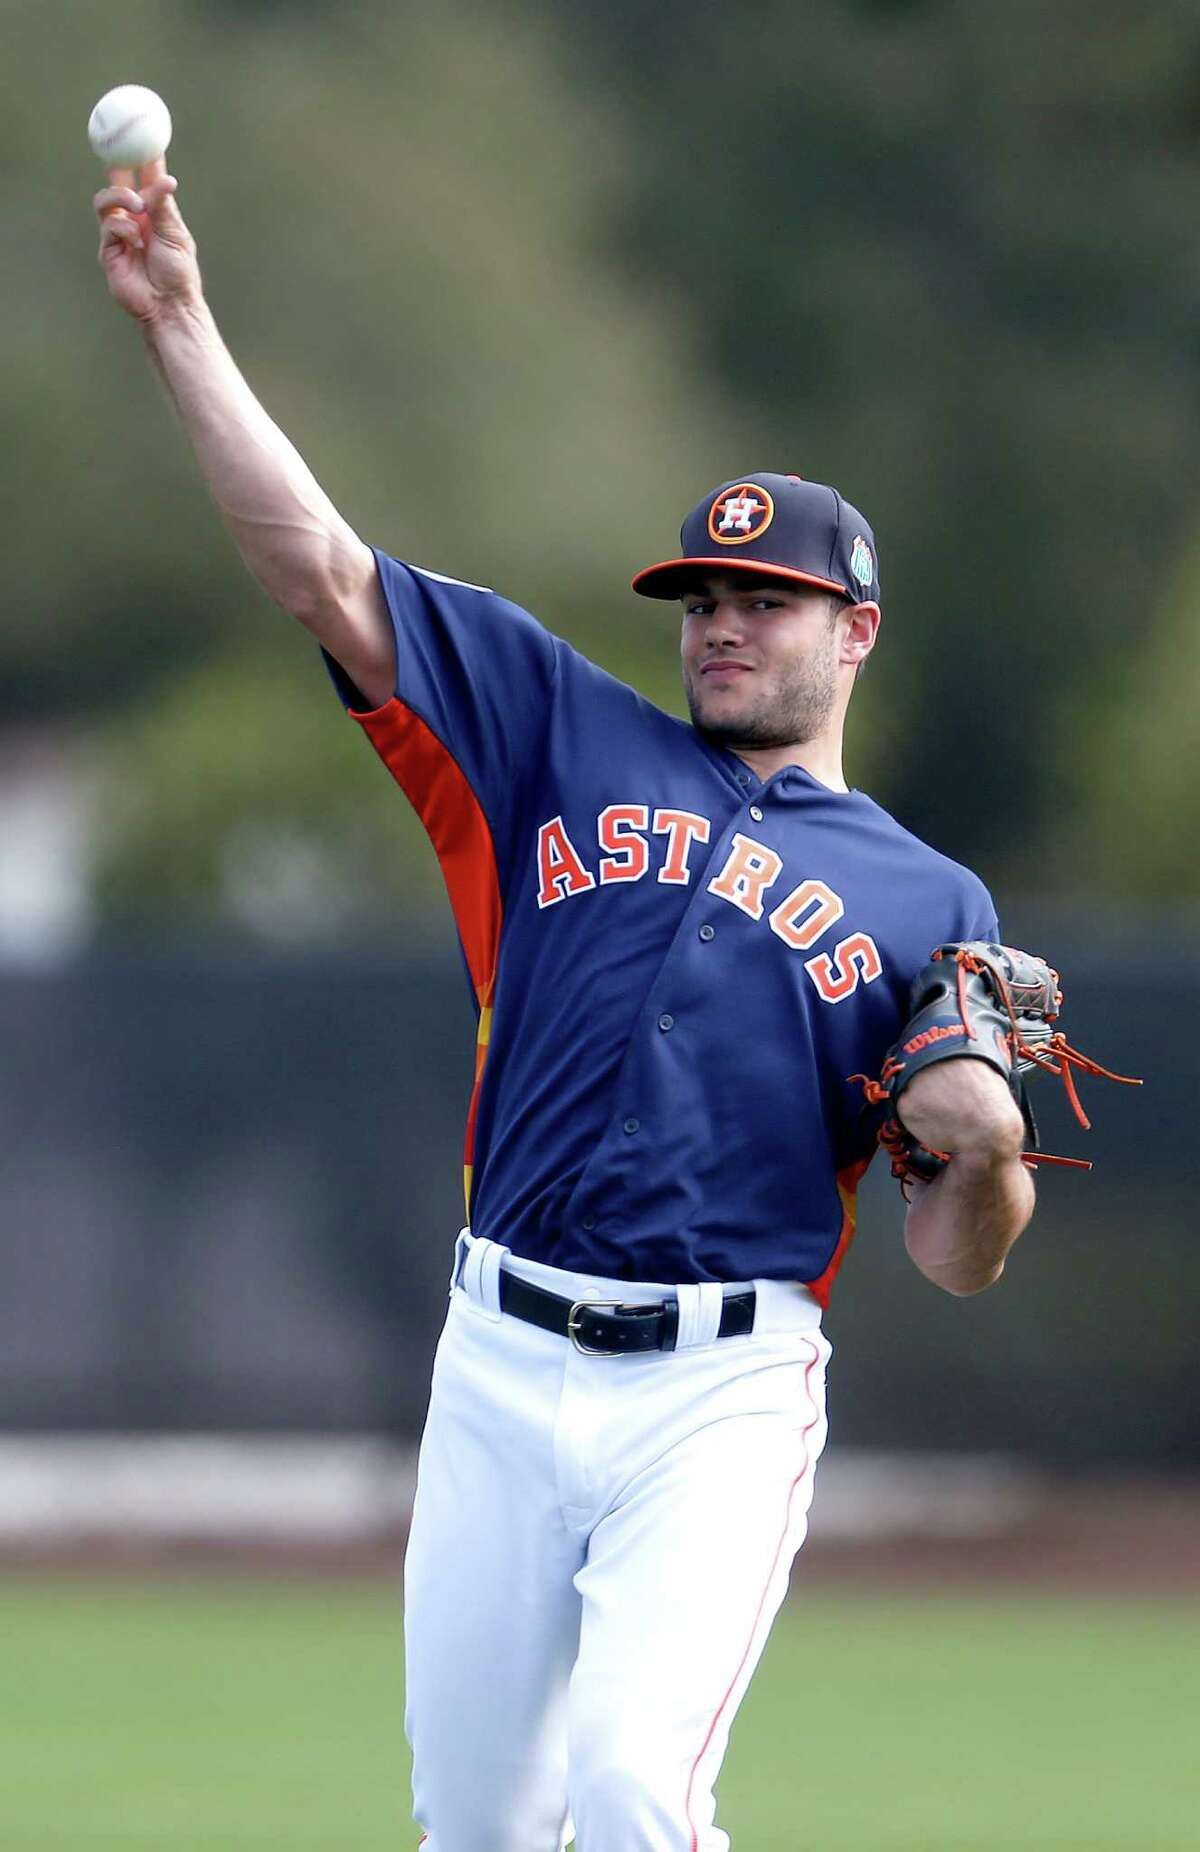 Houston Astros pitcher Lance McCullers throws long toss warmups during spring training in Kissimmee, Florida, Sunday, Feb. 21, 2016.( Karen Warren / Houston Chronicle )